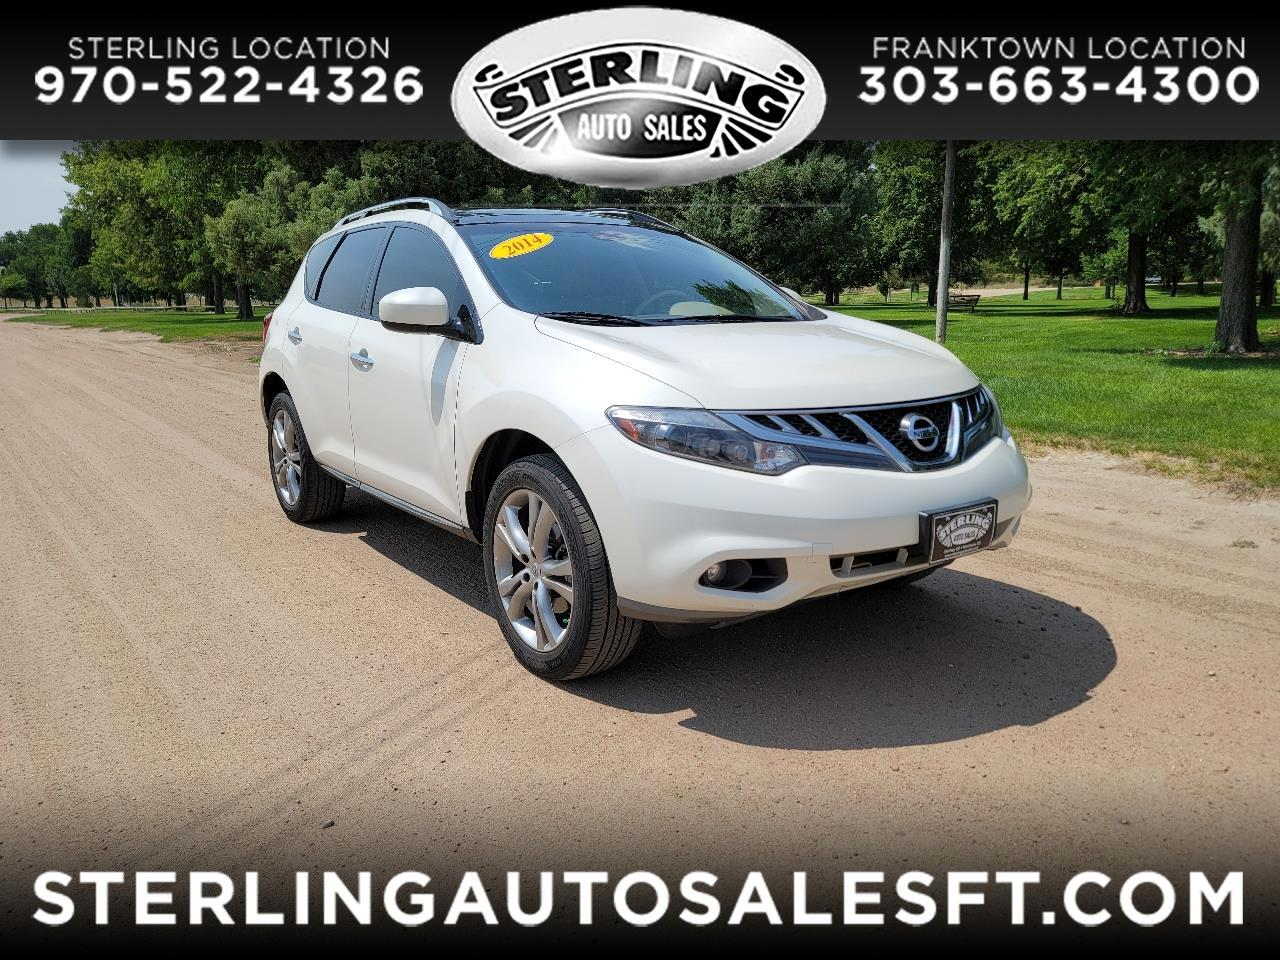 Nissan Murano AWD 4dr LE 2014